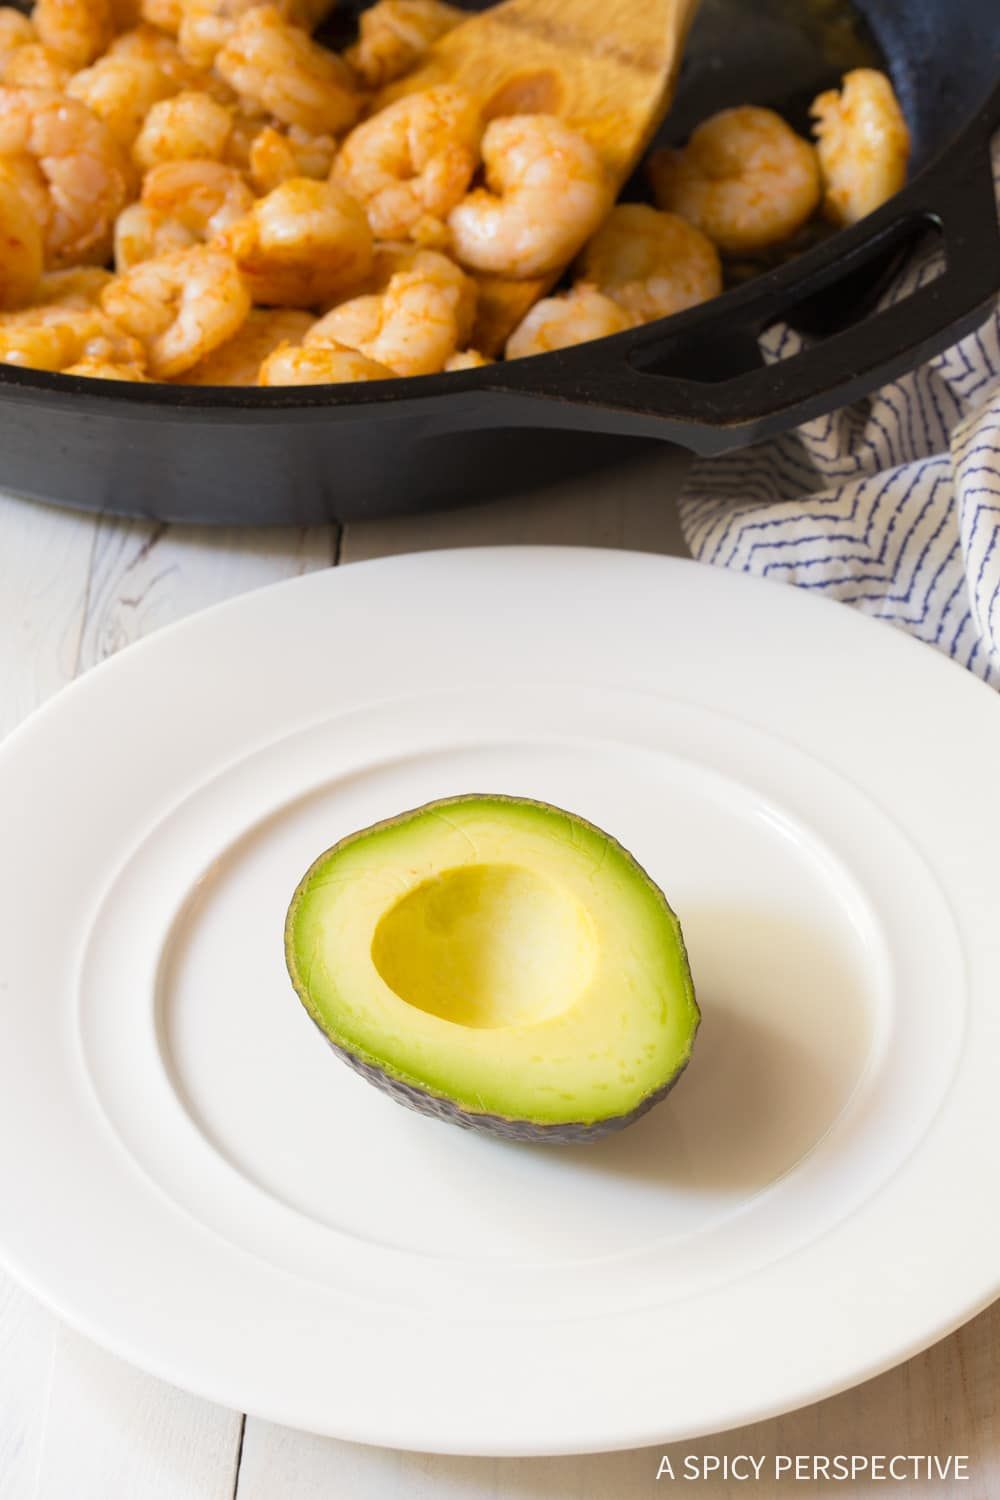 How to Make 6-Ingredient Keto Creole Shrimp Stuffed Avocado Recipe #ASpicyPerspective #ketogenic